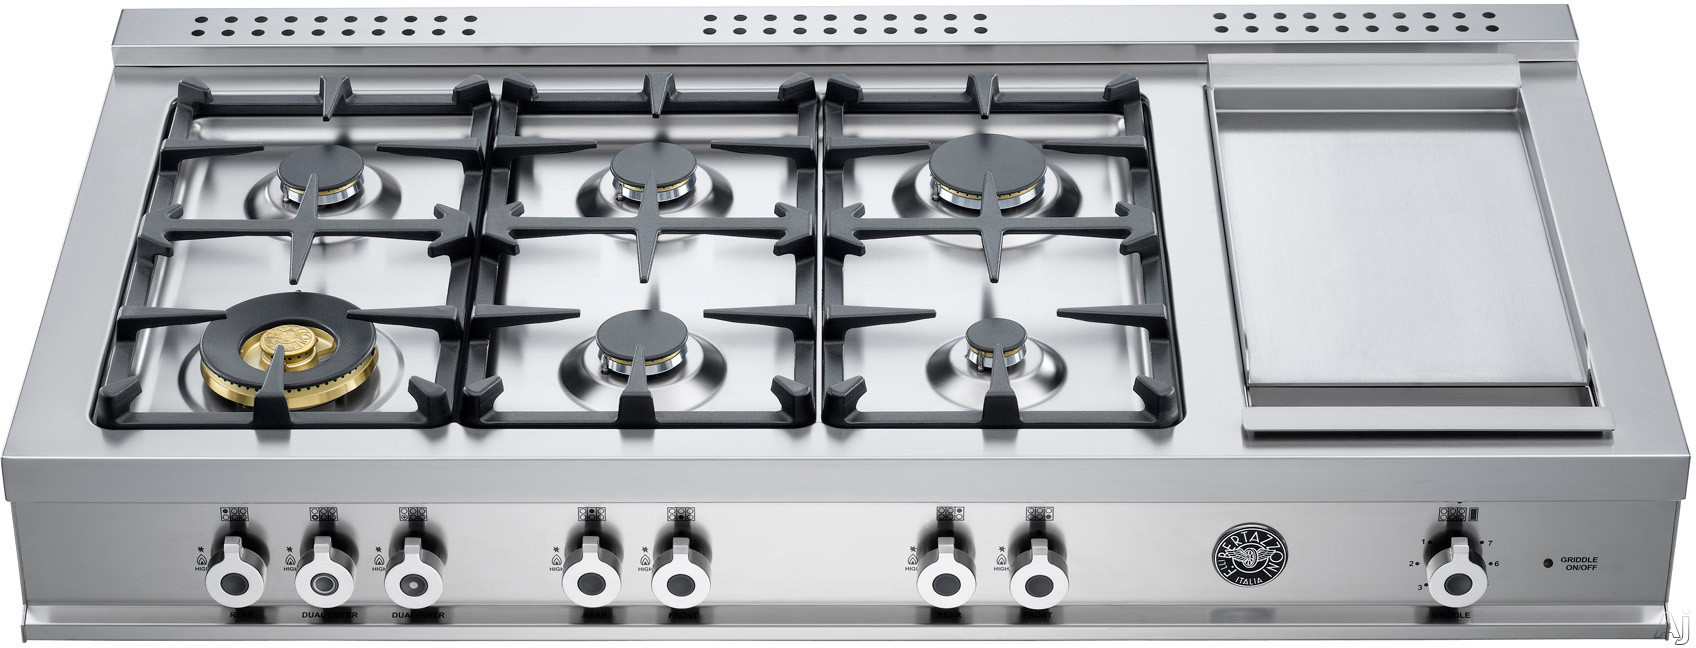 Bertazzoni Professional Series CB486G00XLP 48 Inch Pro-Style Gas Rangetop with 6 Sealed Burners, 18,000 BTU Brass Power Burner, Electric Griddle, Continuous Grates and Island Trim Included: Liquid Propane